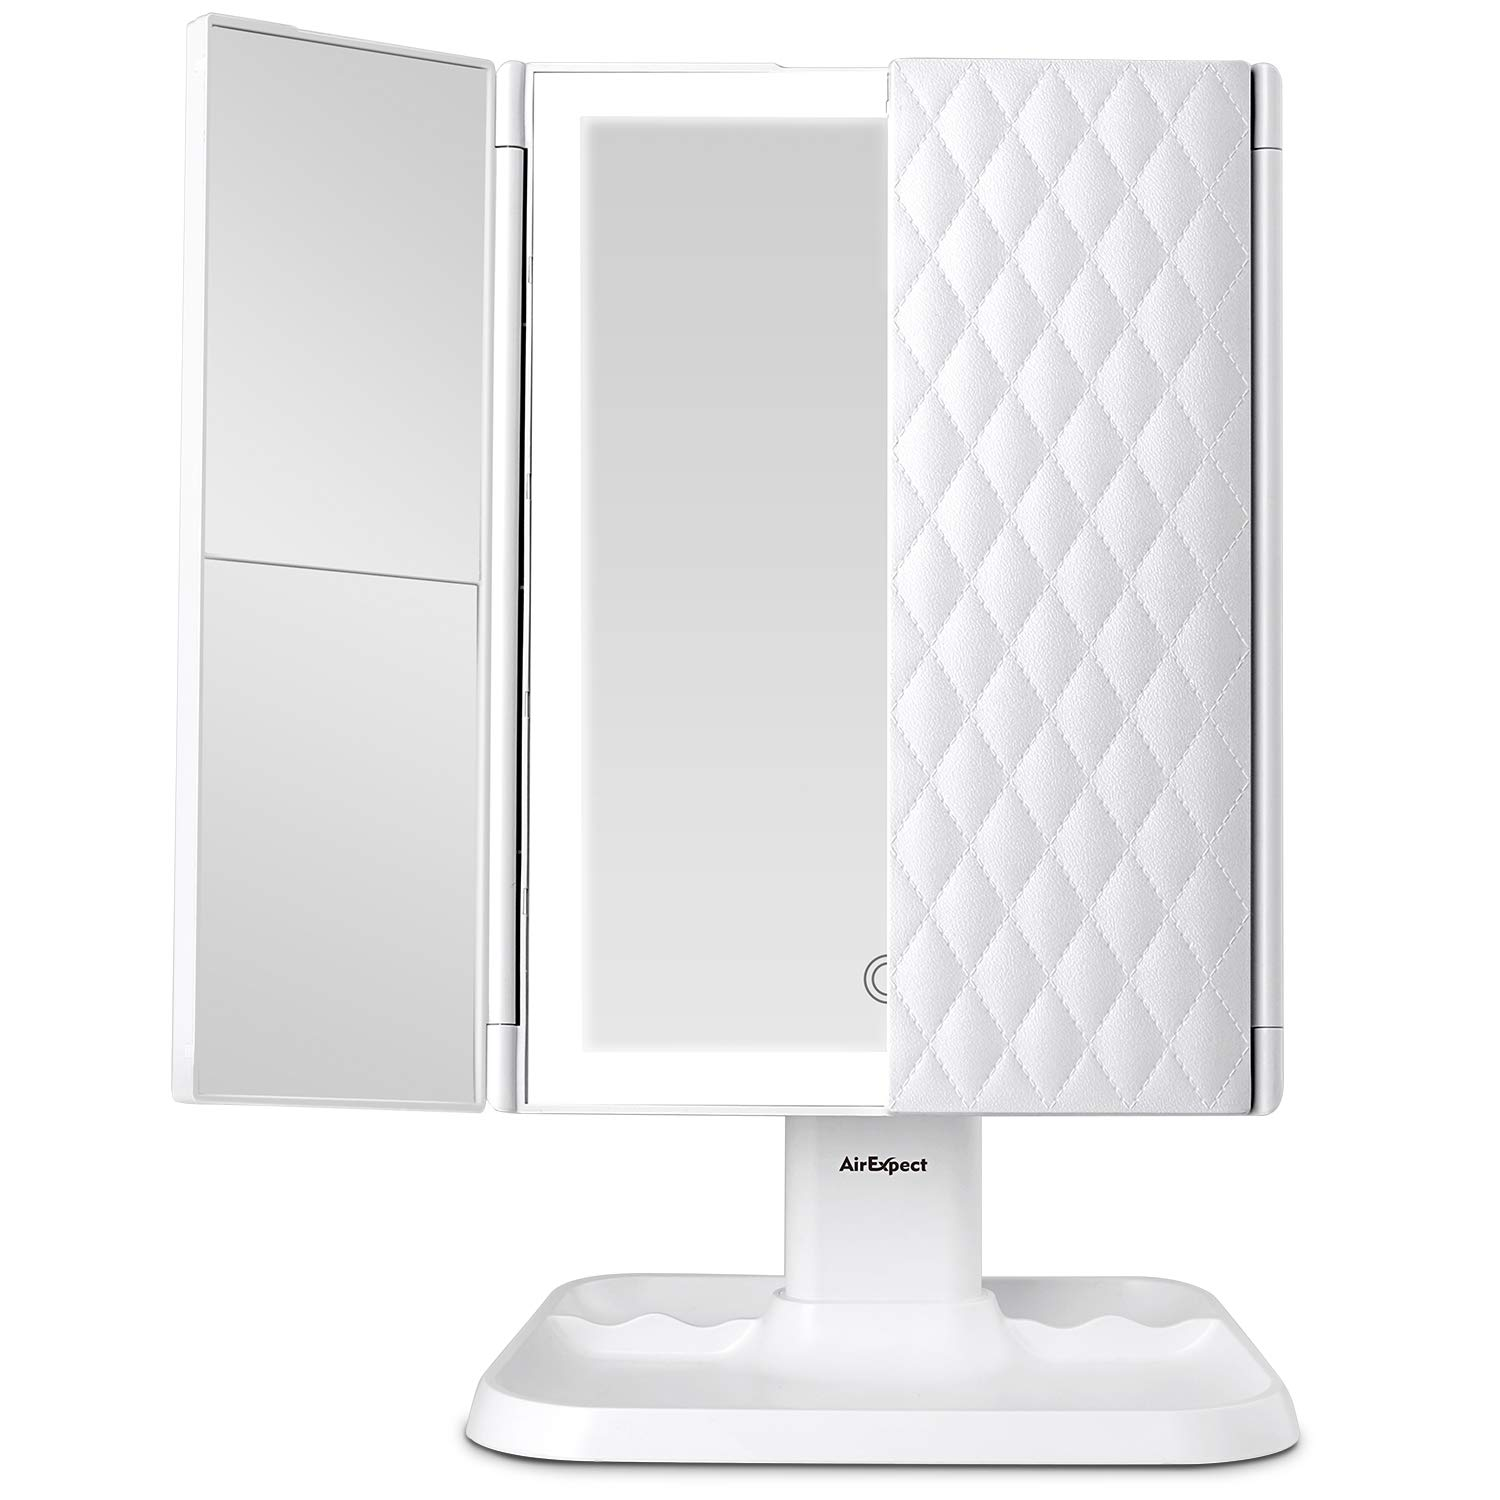 Makeup Mirror Vanity Mirror with Lights - 3 Color Lighting Modes 72 LED Trifold Mirror, Touch Control Design, $31 @amazon.com